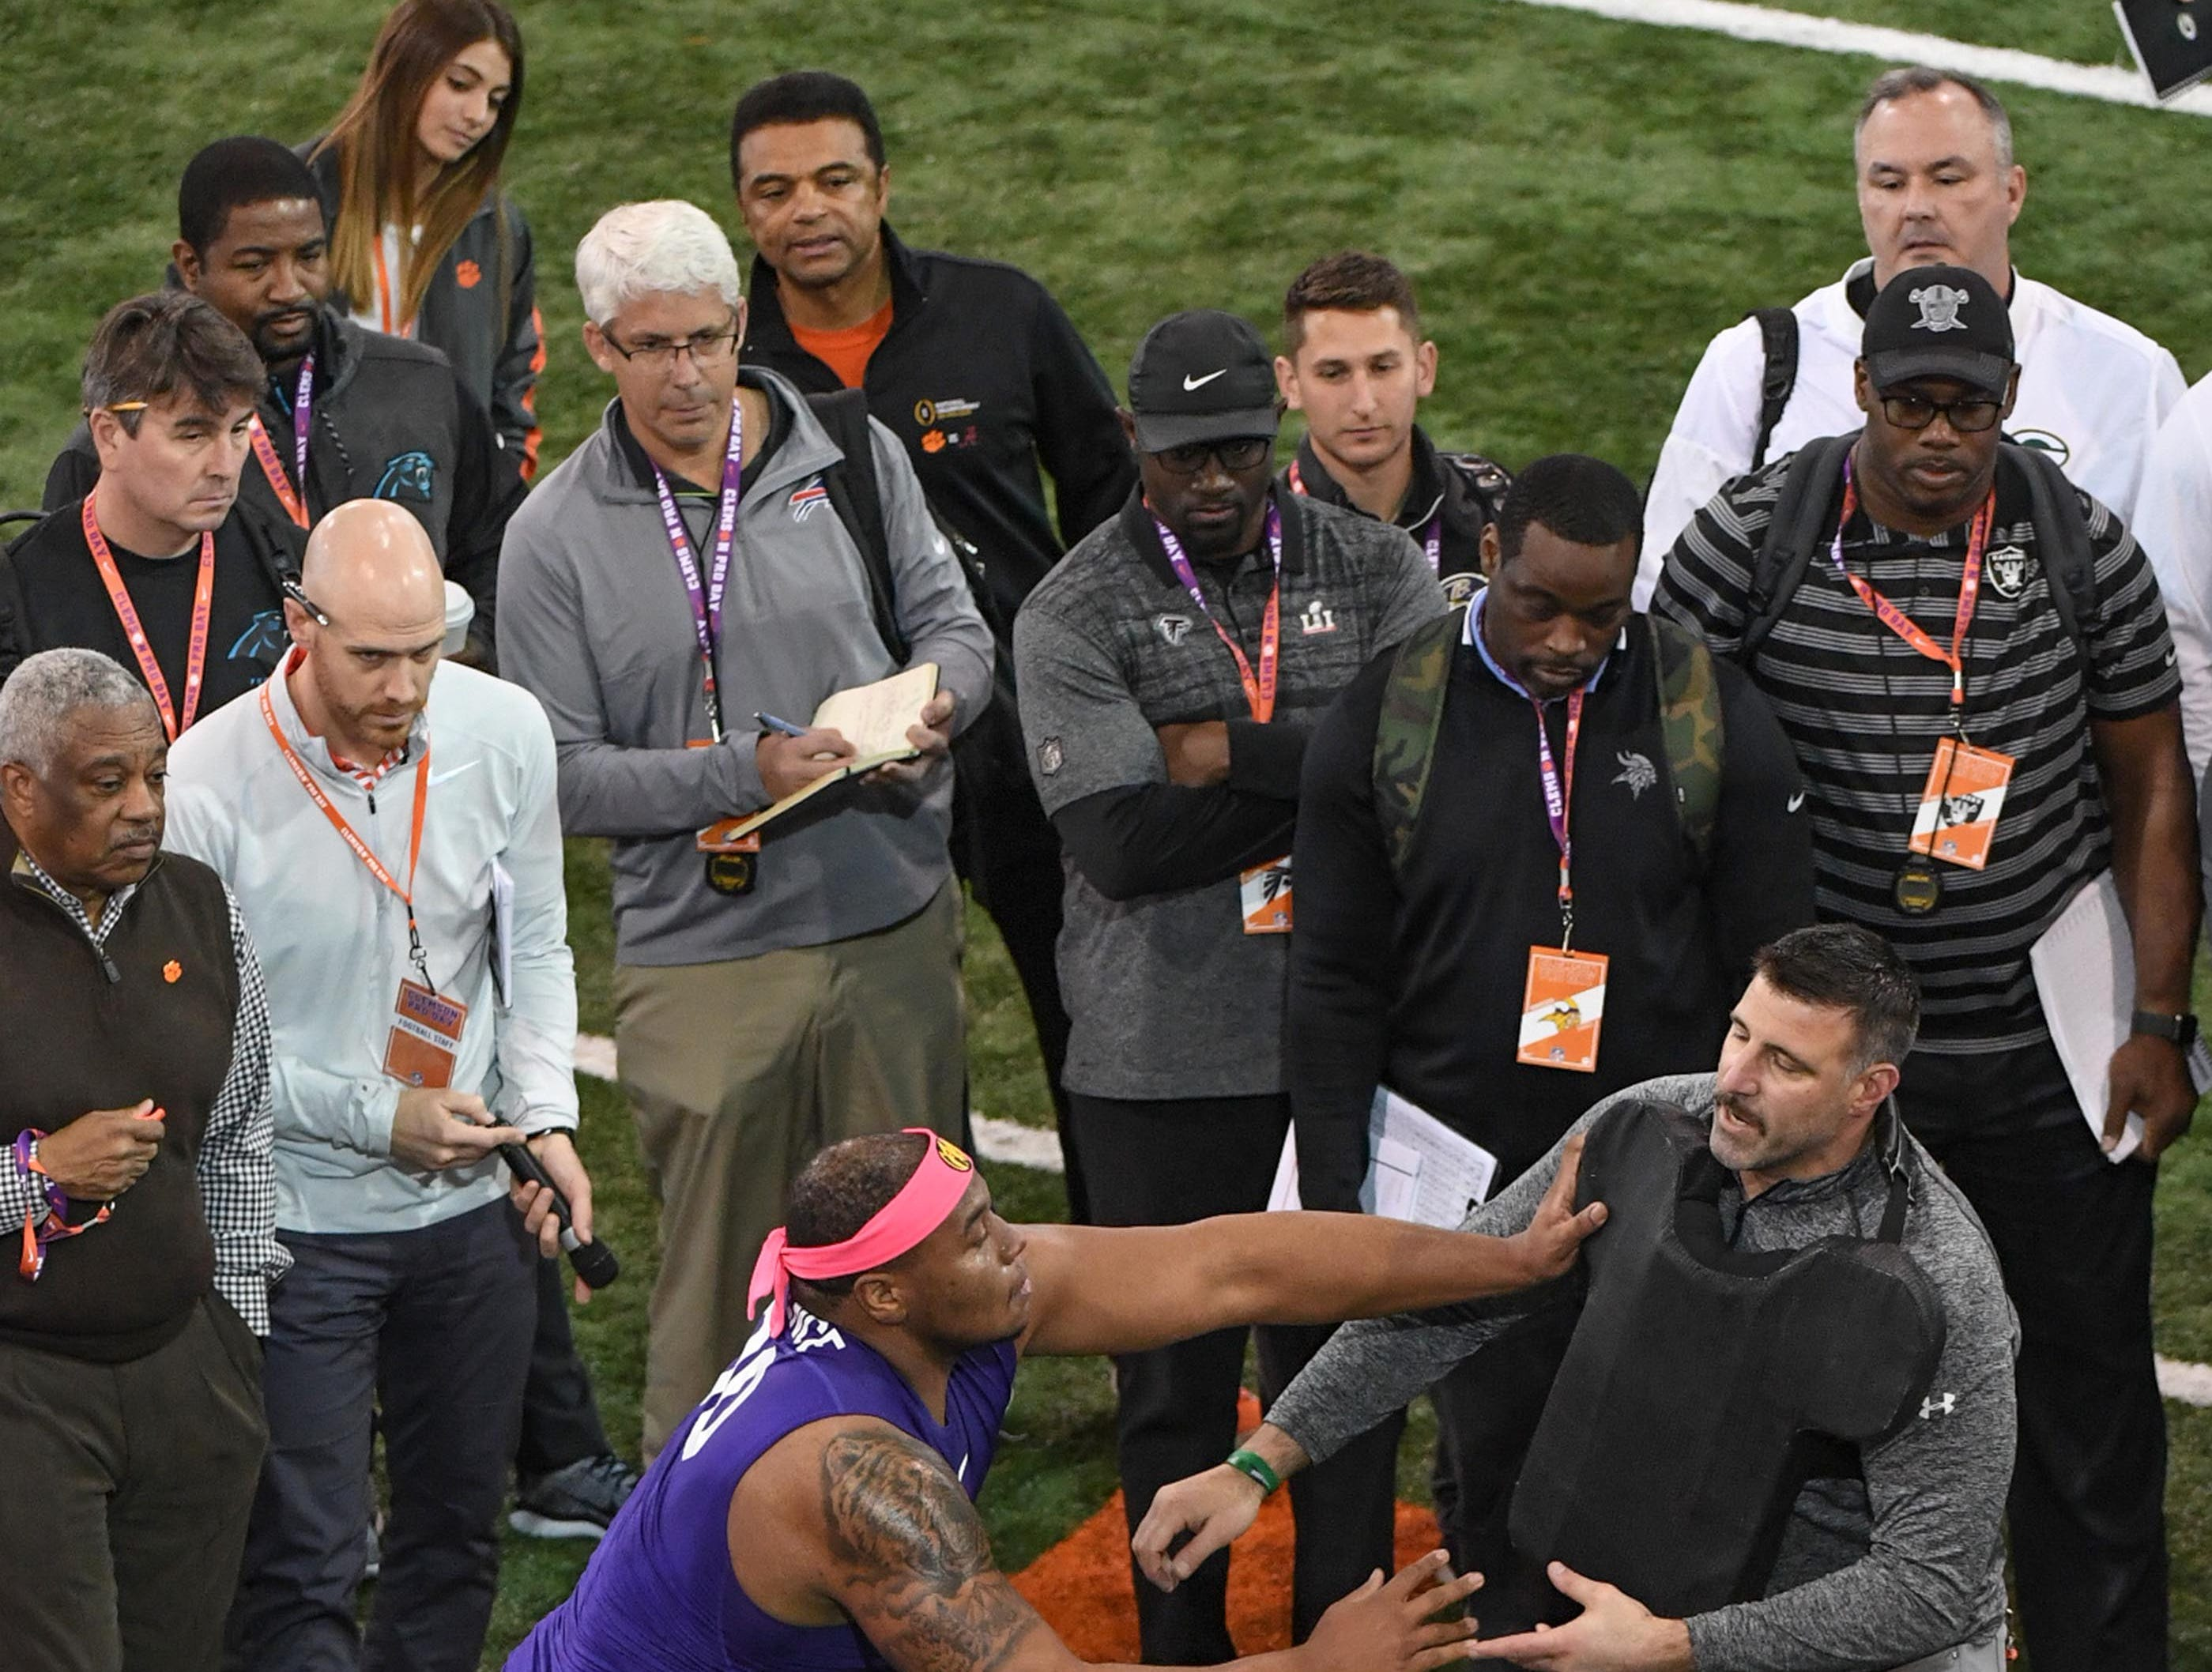 Defensive lineman Dexter Lawrence is observed by pro scouts in a blocking drill with Tennessee coach Mike Vrabel during Clemson pro day at the Poe Indoor Facility in Clemson Thursday, March 14, 2019.